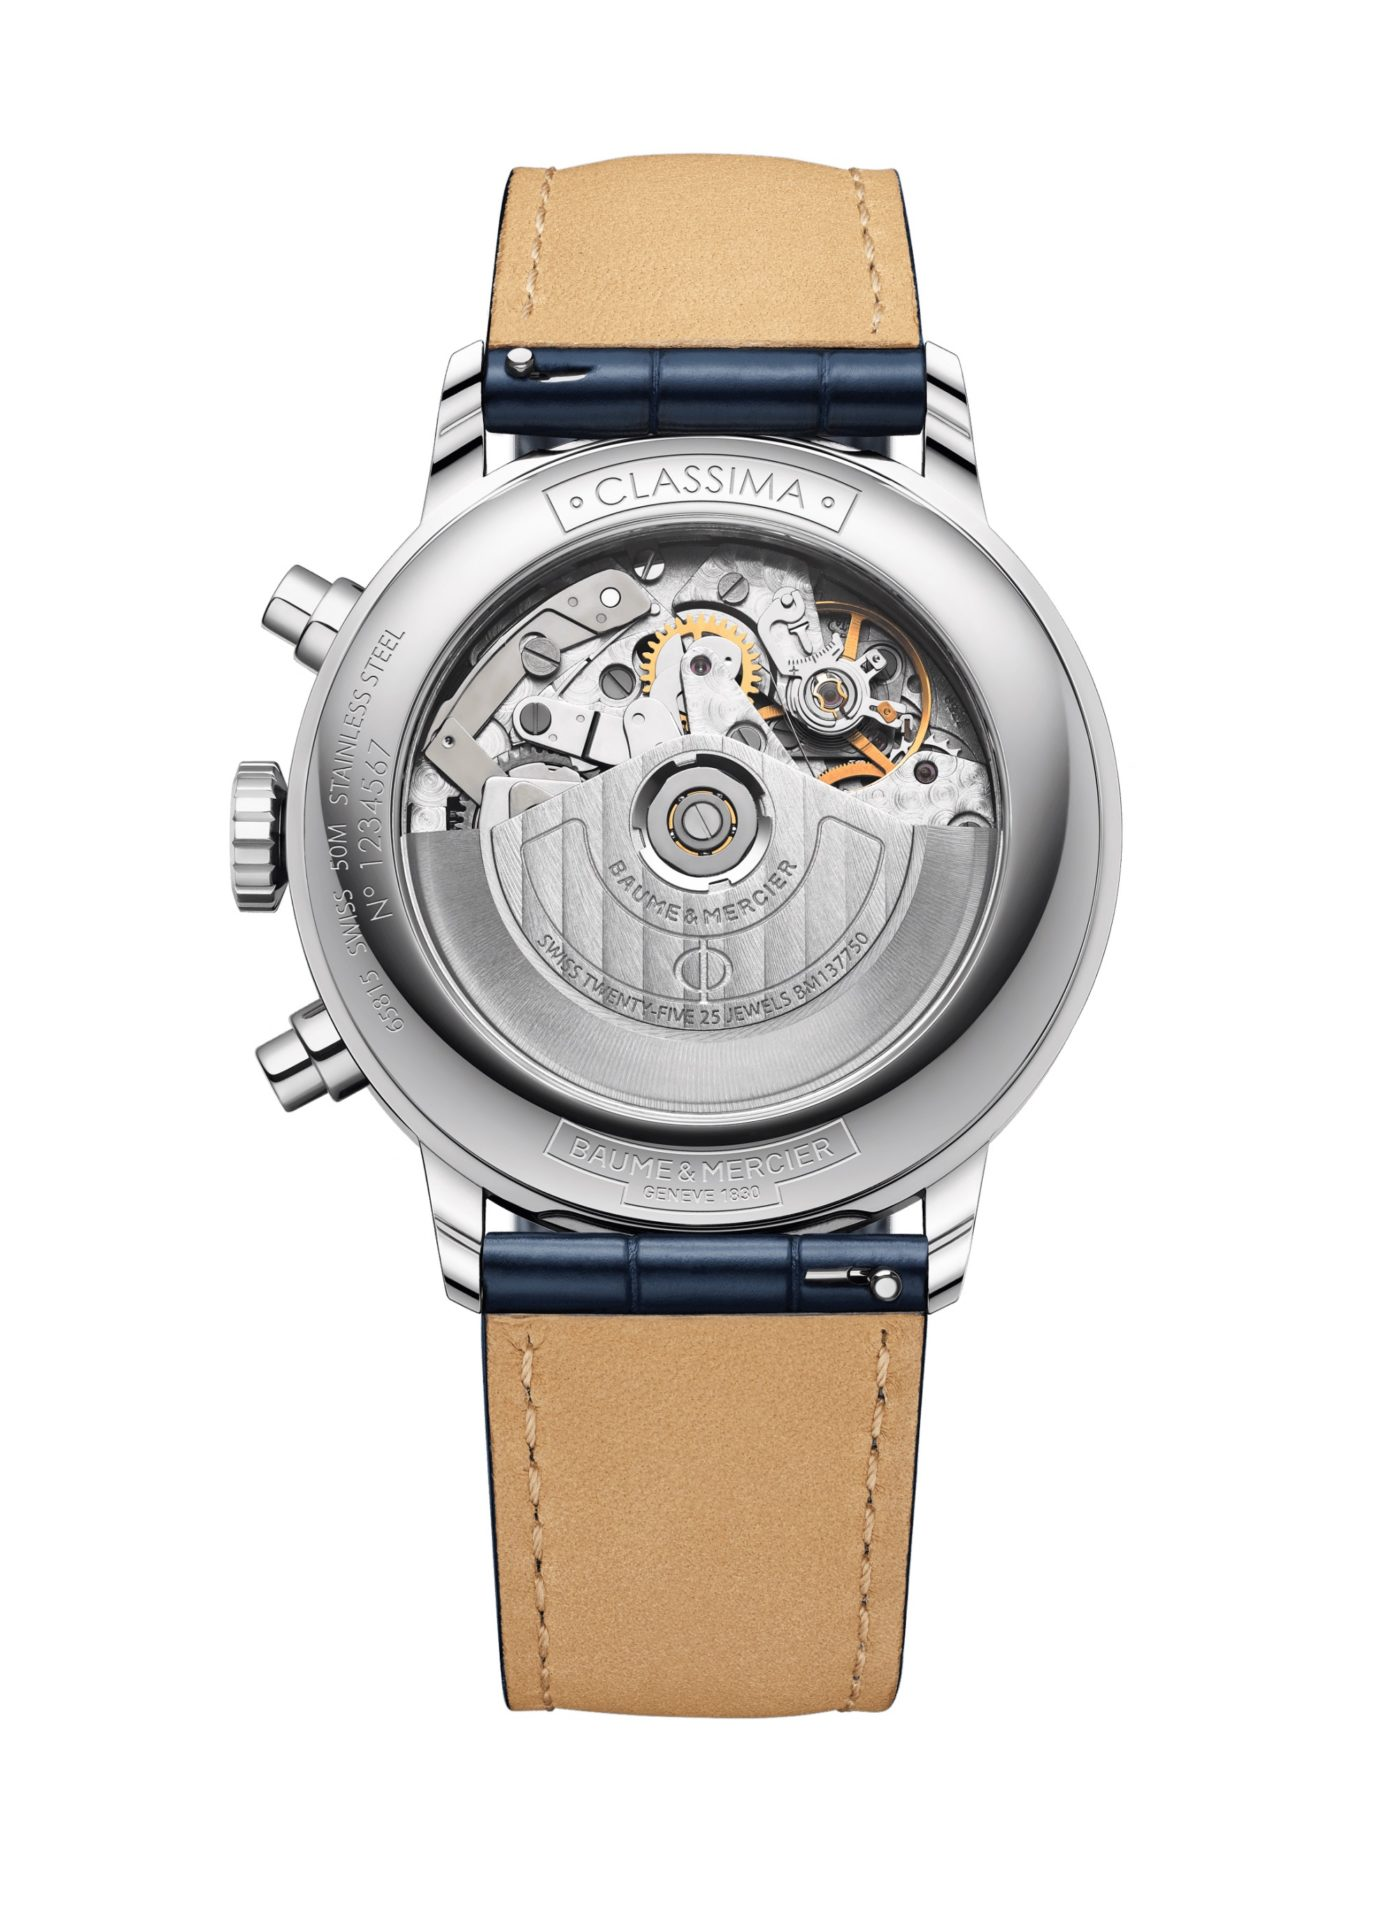 Baume-&-Mercier-Classima-10330*-Hall-of-Time